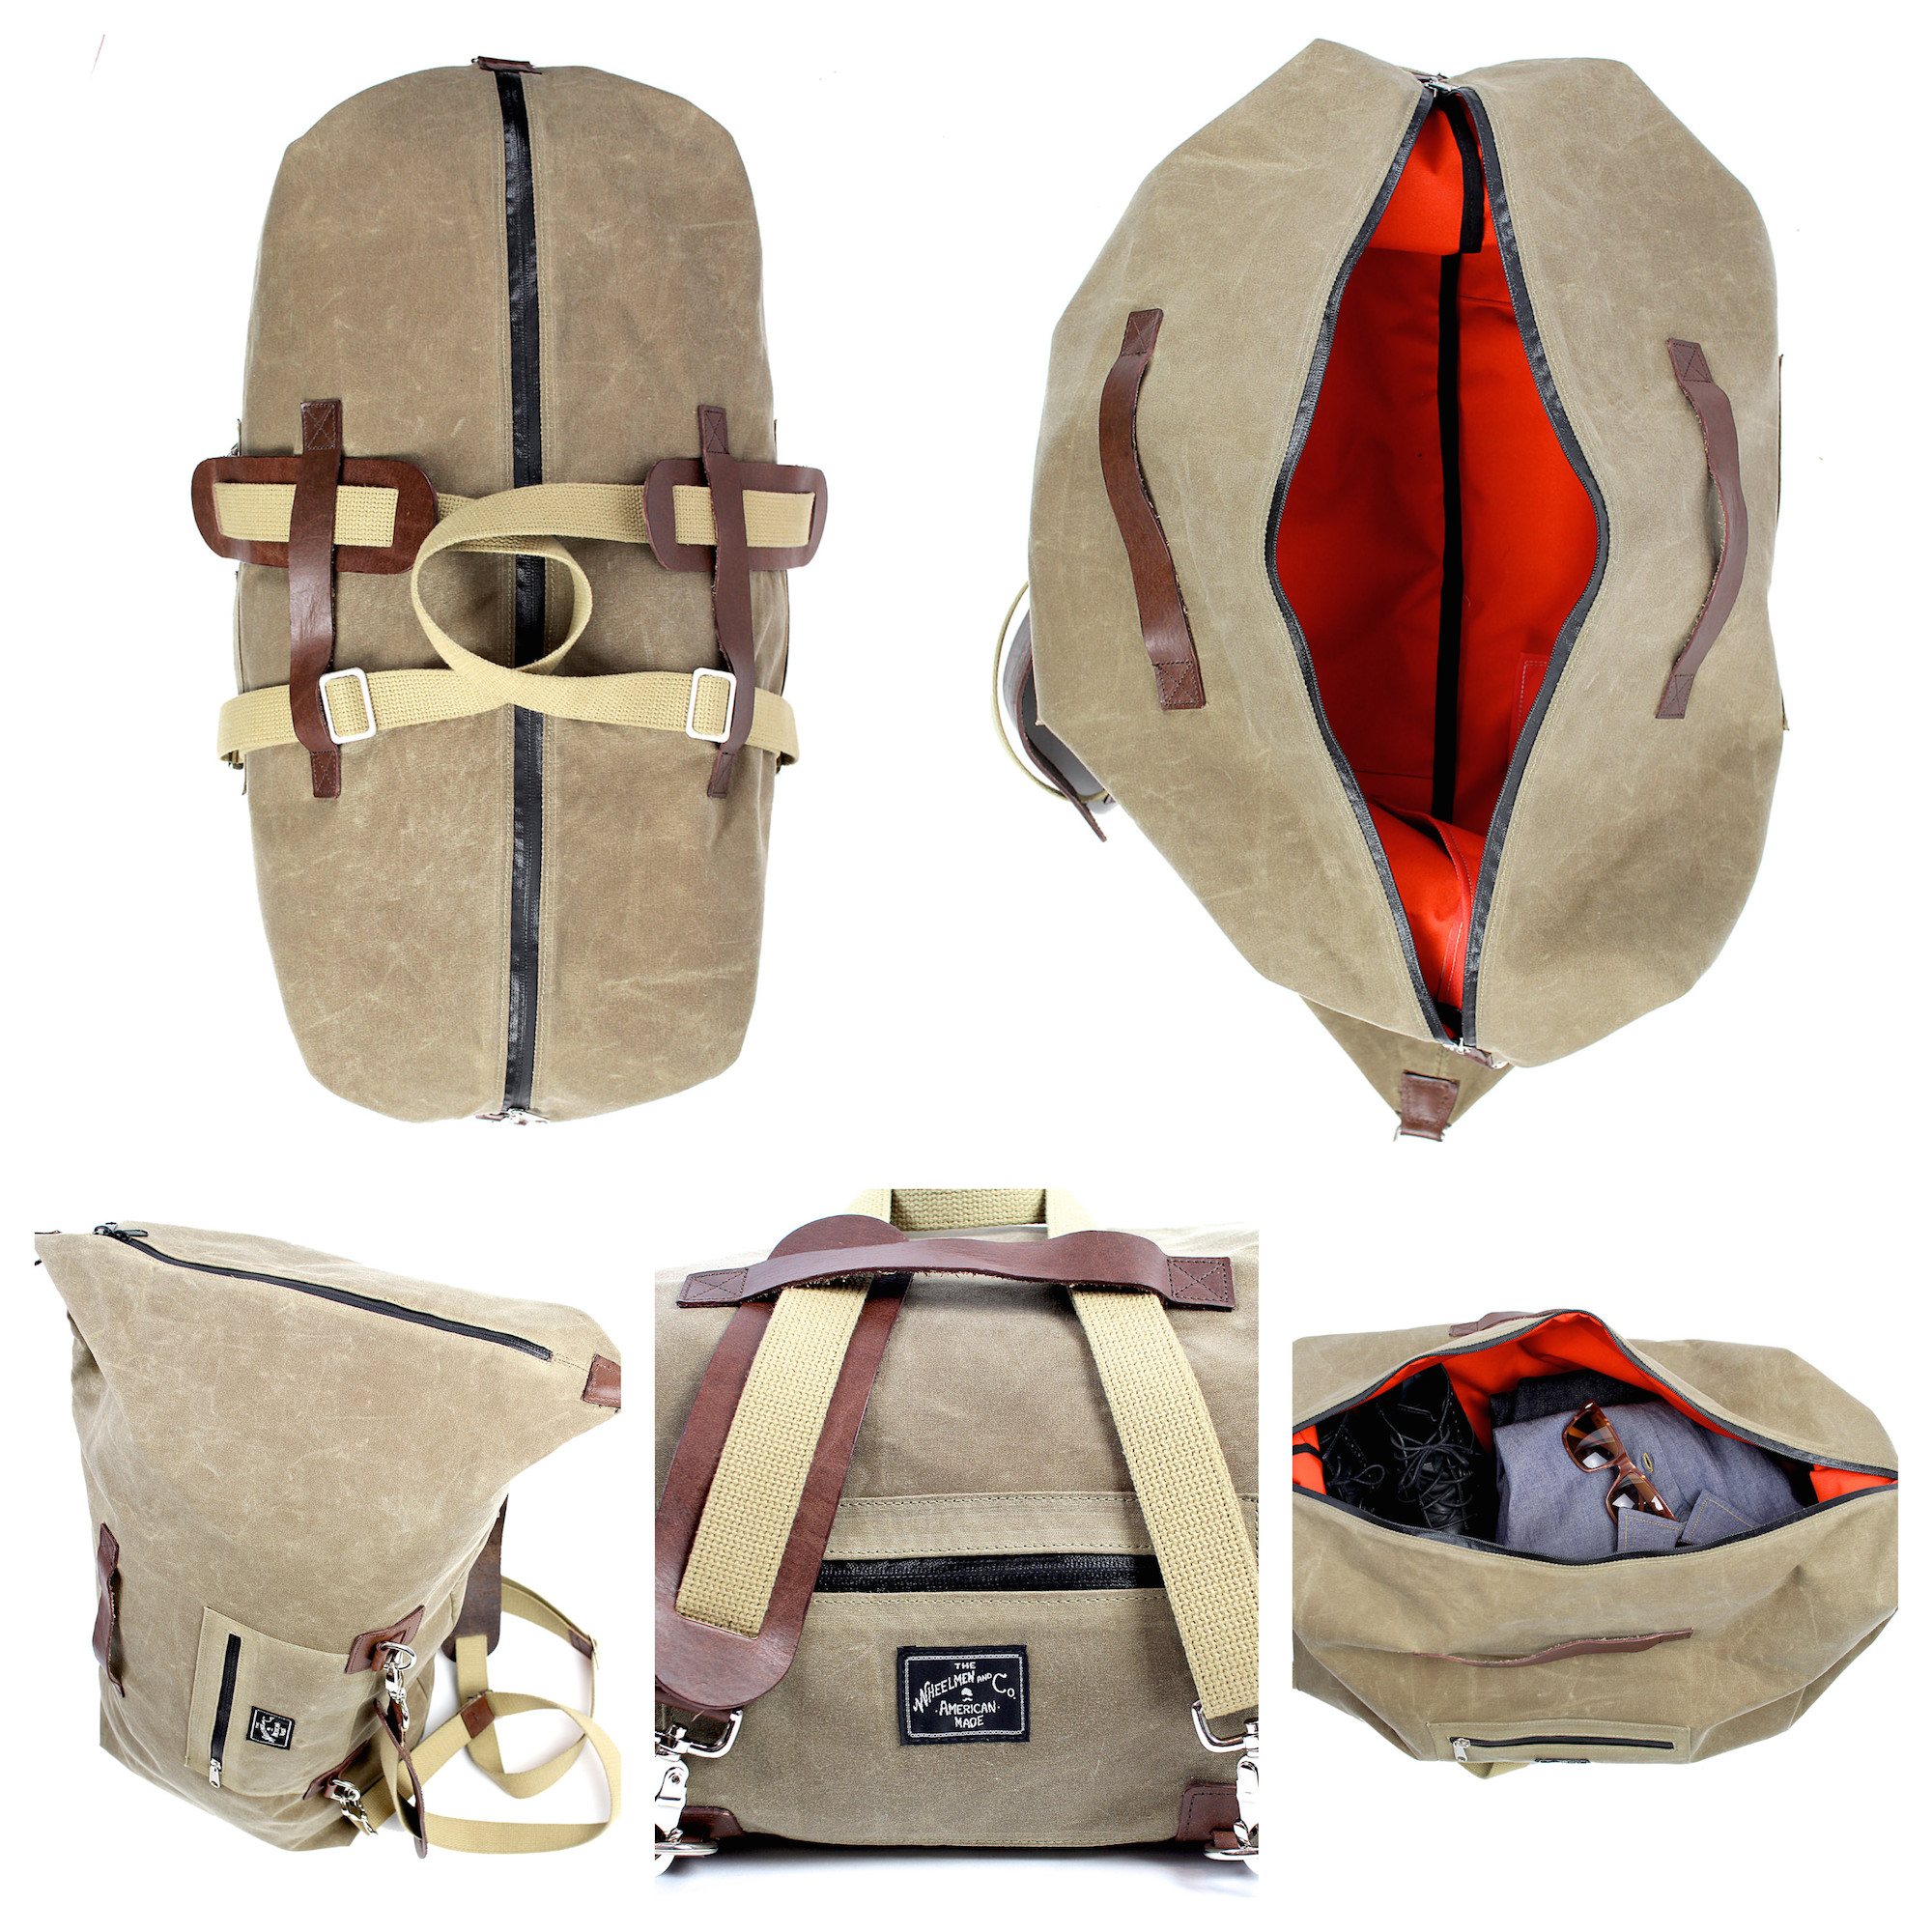 The Overman Duffle x Backpack 6477de0bd95